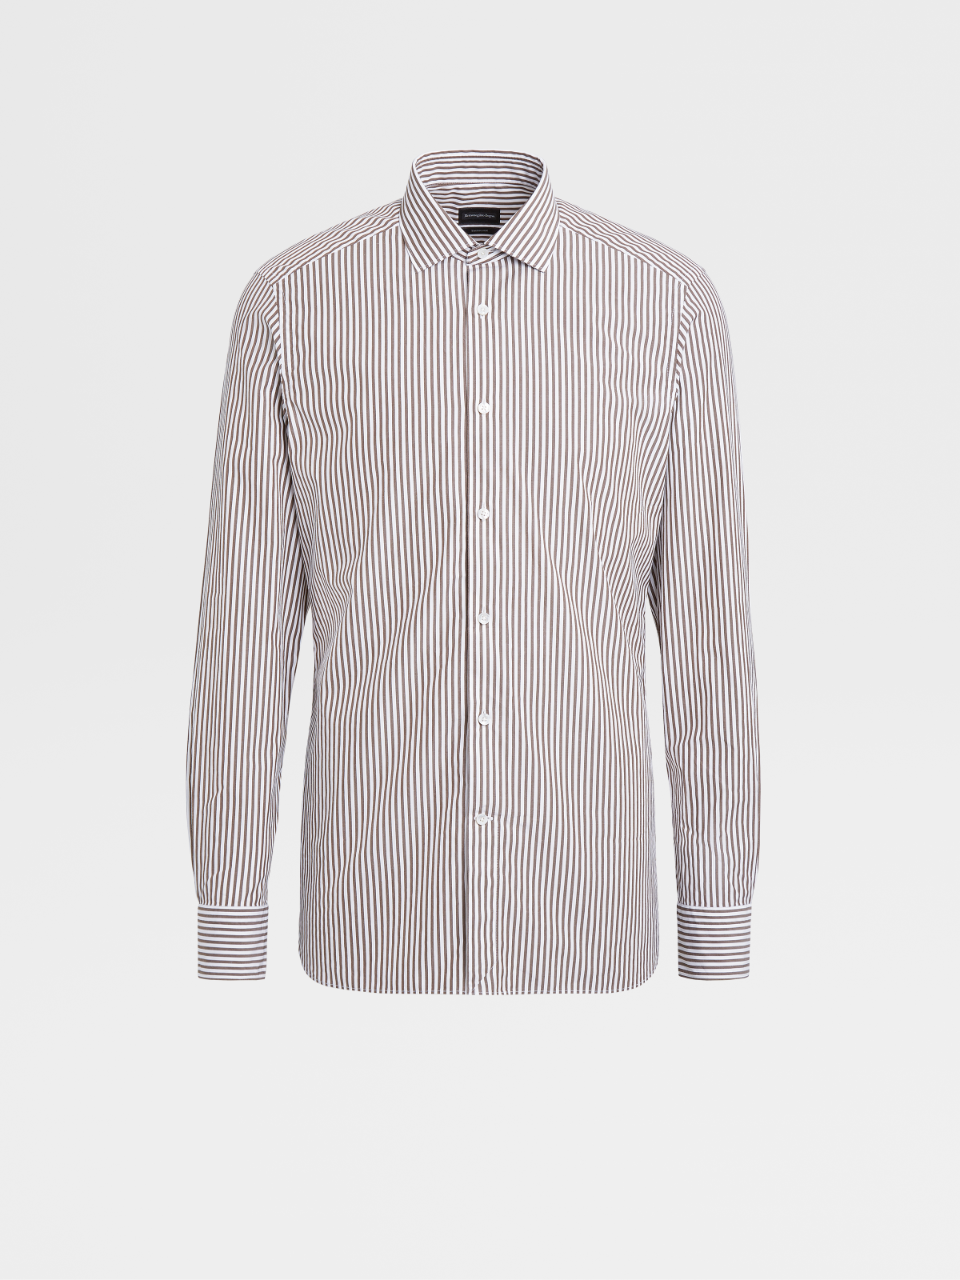 Trofeo Cotton and Silk Shirt